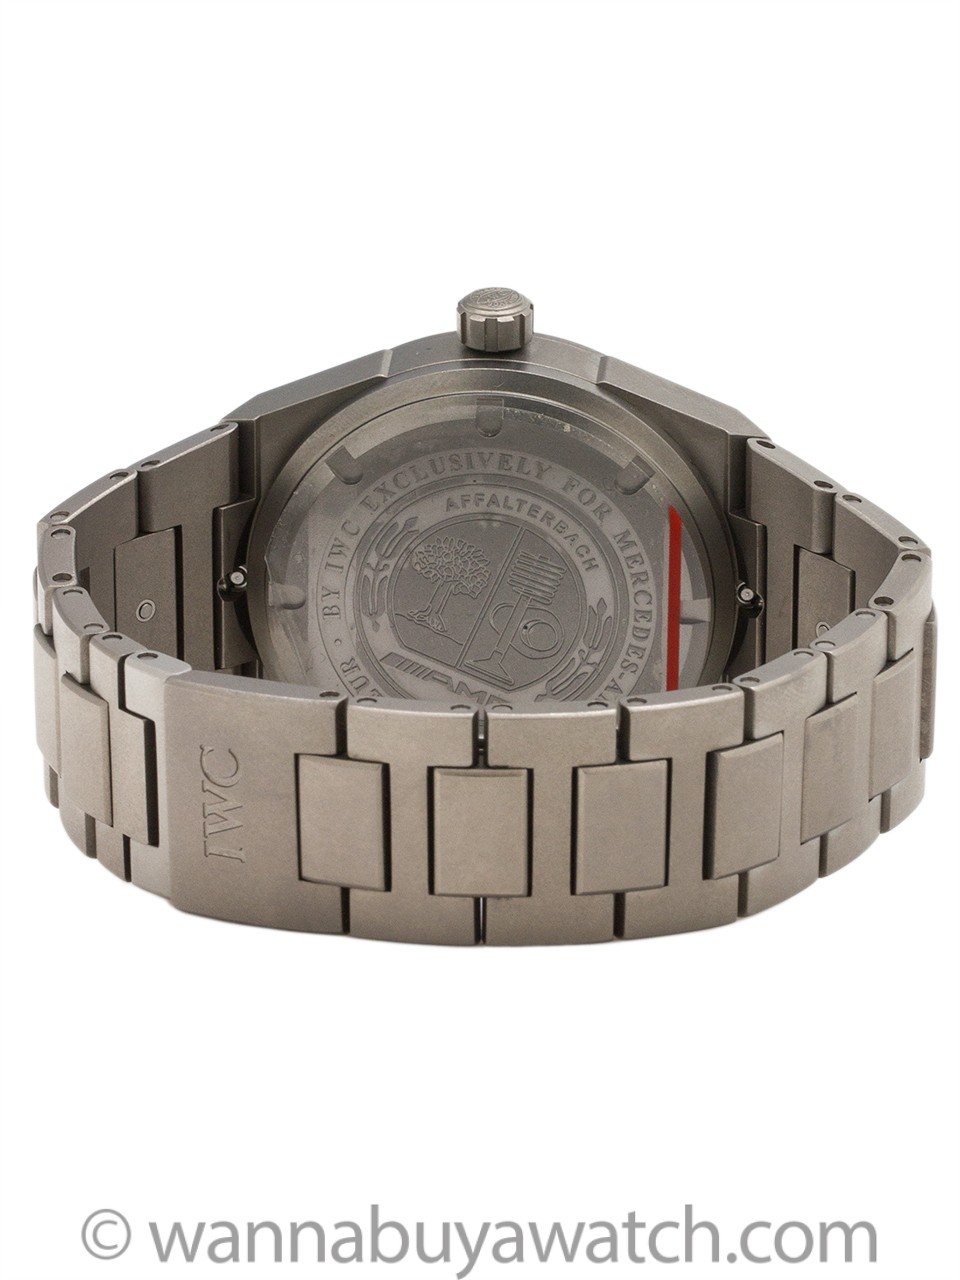 IWC Titanium Ingenieur for Mercedes - AMG Reference IW3227-02